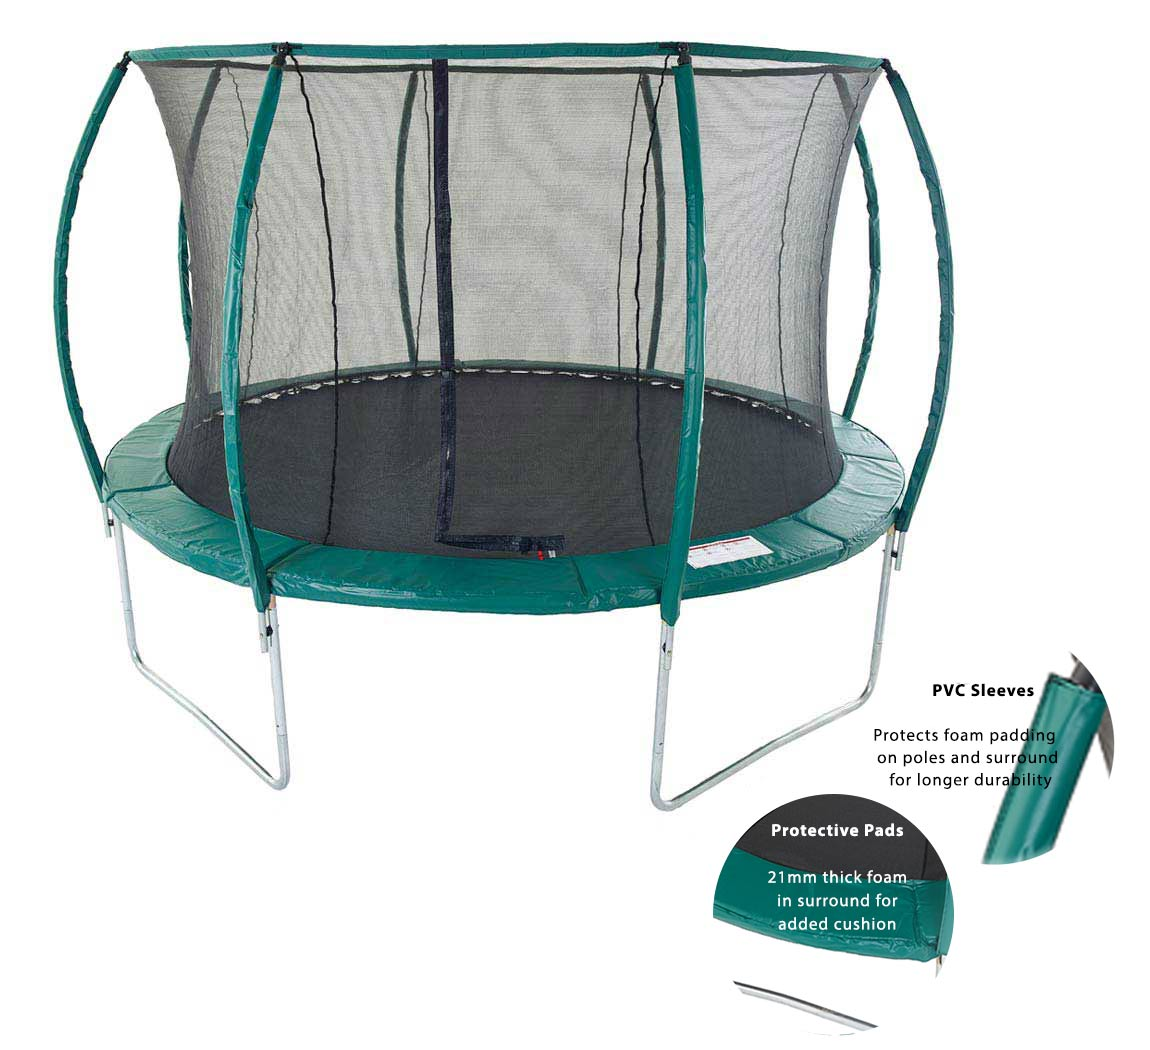 12ft Trampoline With Enclosure And Ladder. Skyhigh Orbisphere